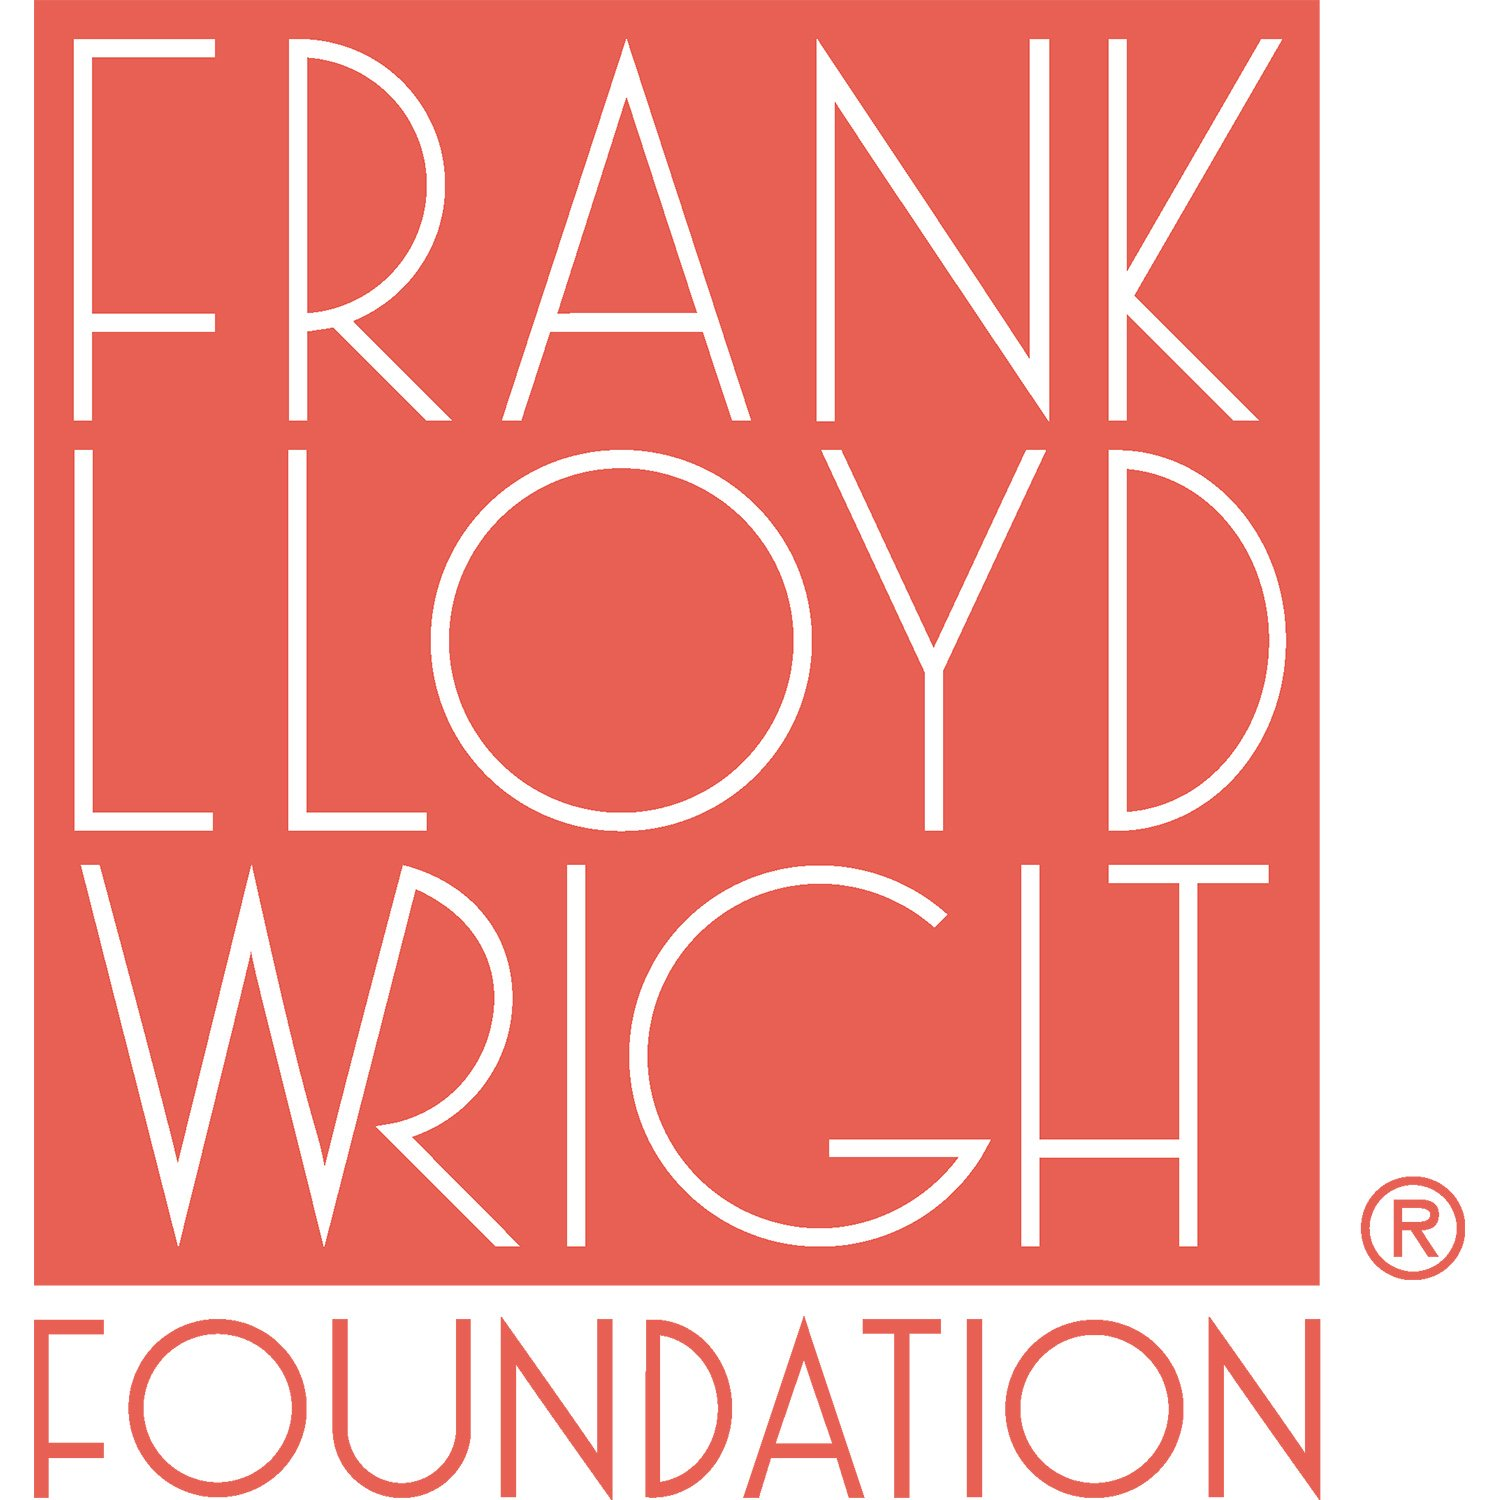 Frank Lloyd Wright Hoffman House Rug Set of 4 (16-Ounce Oxygen Cooler Glass, Hoffman House Rug) by Culver (Image #4)